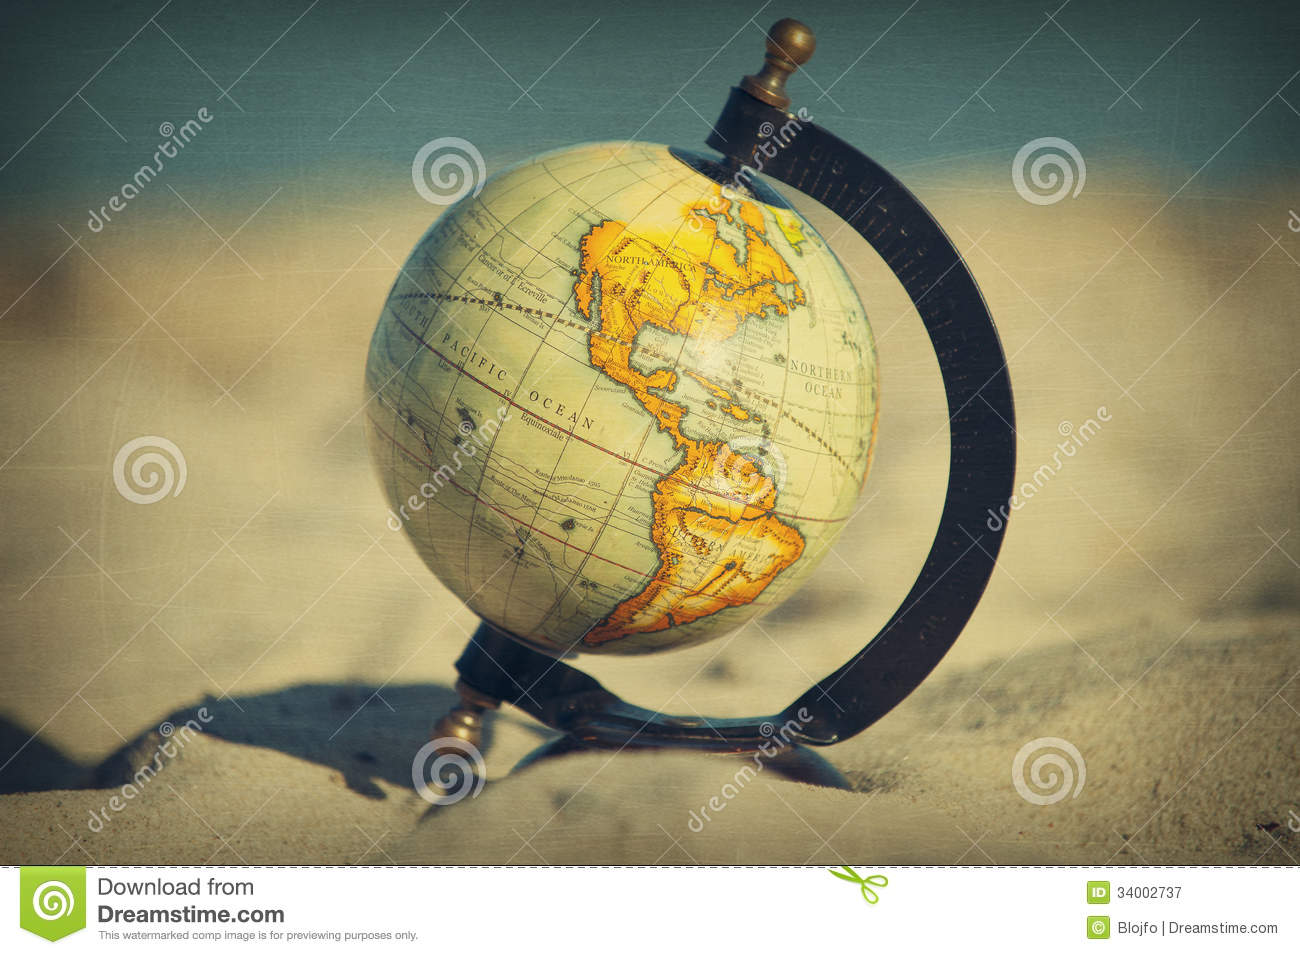 Retro global beach stock image. Image of conceptual, sand ...